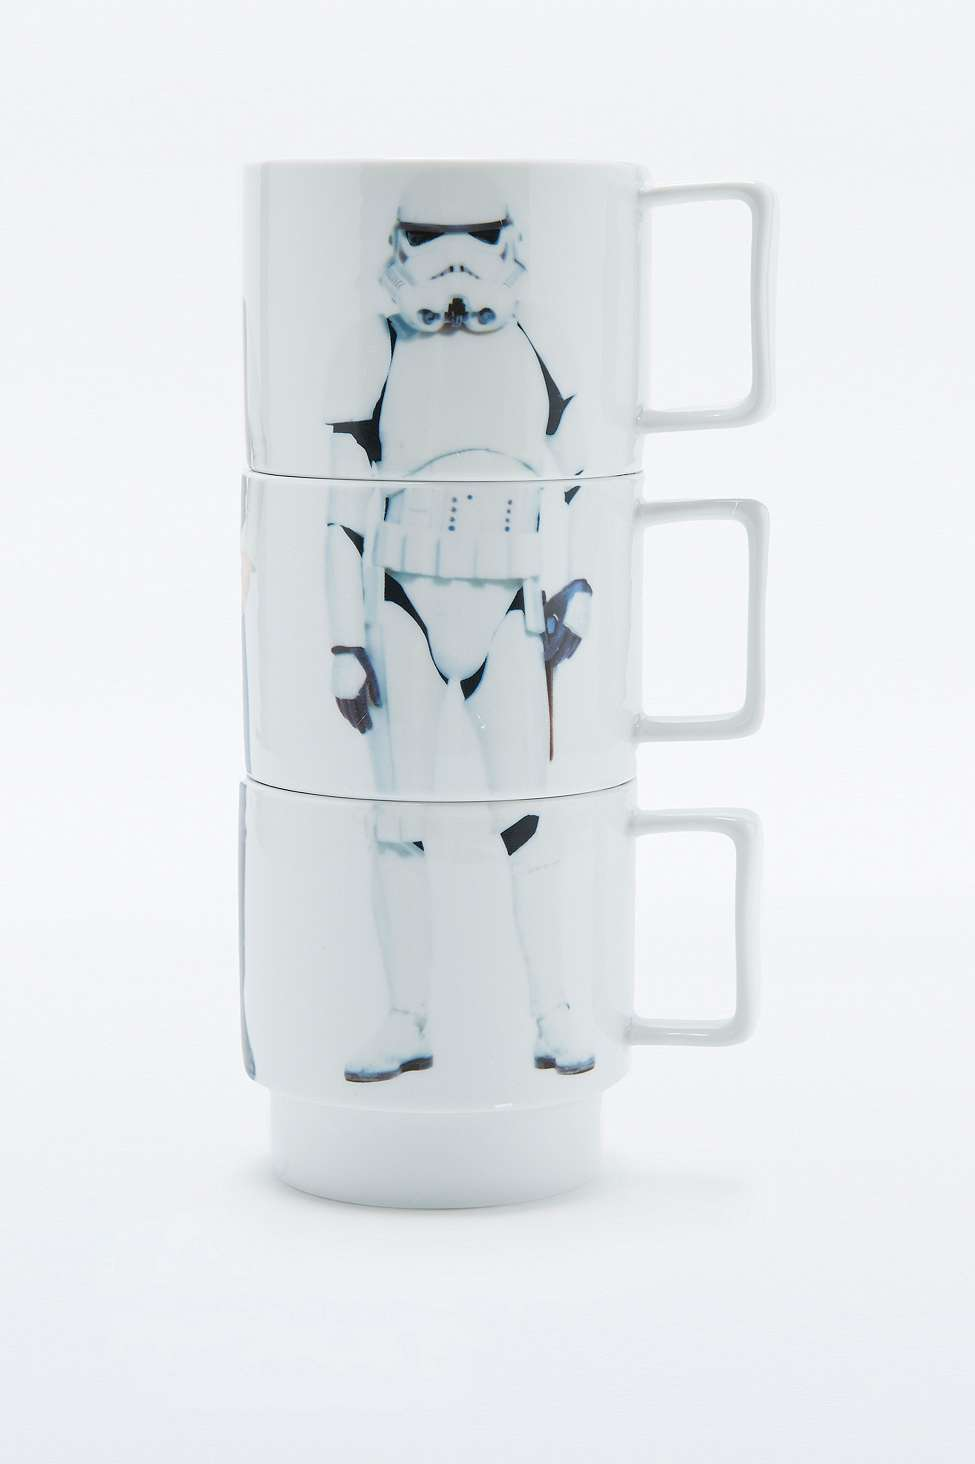 star wars cup Unique And Quirky Gift Ideas Any Odd Person Will Appreciate (Fun Gifts!)